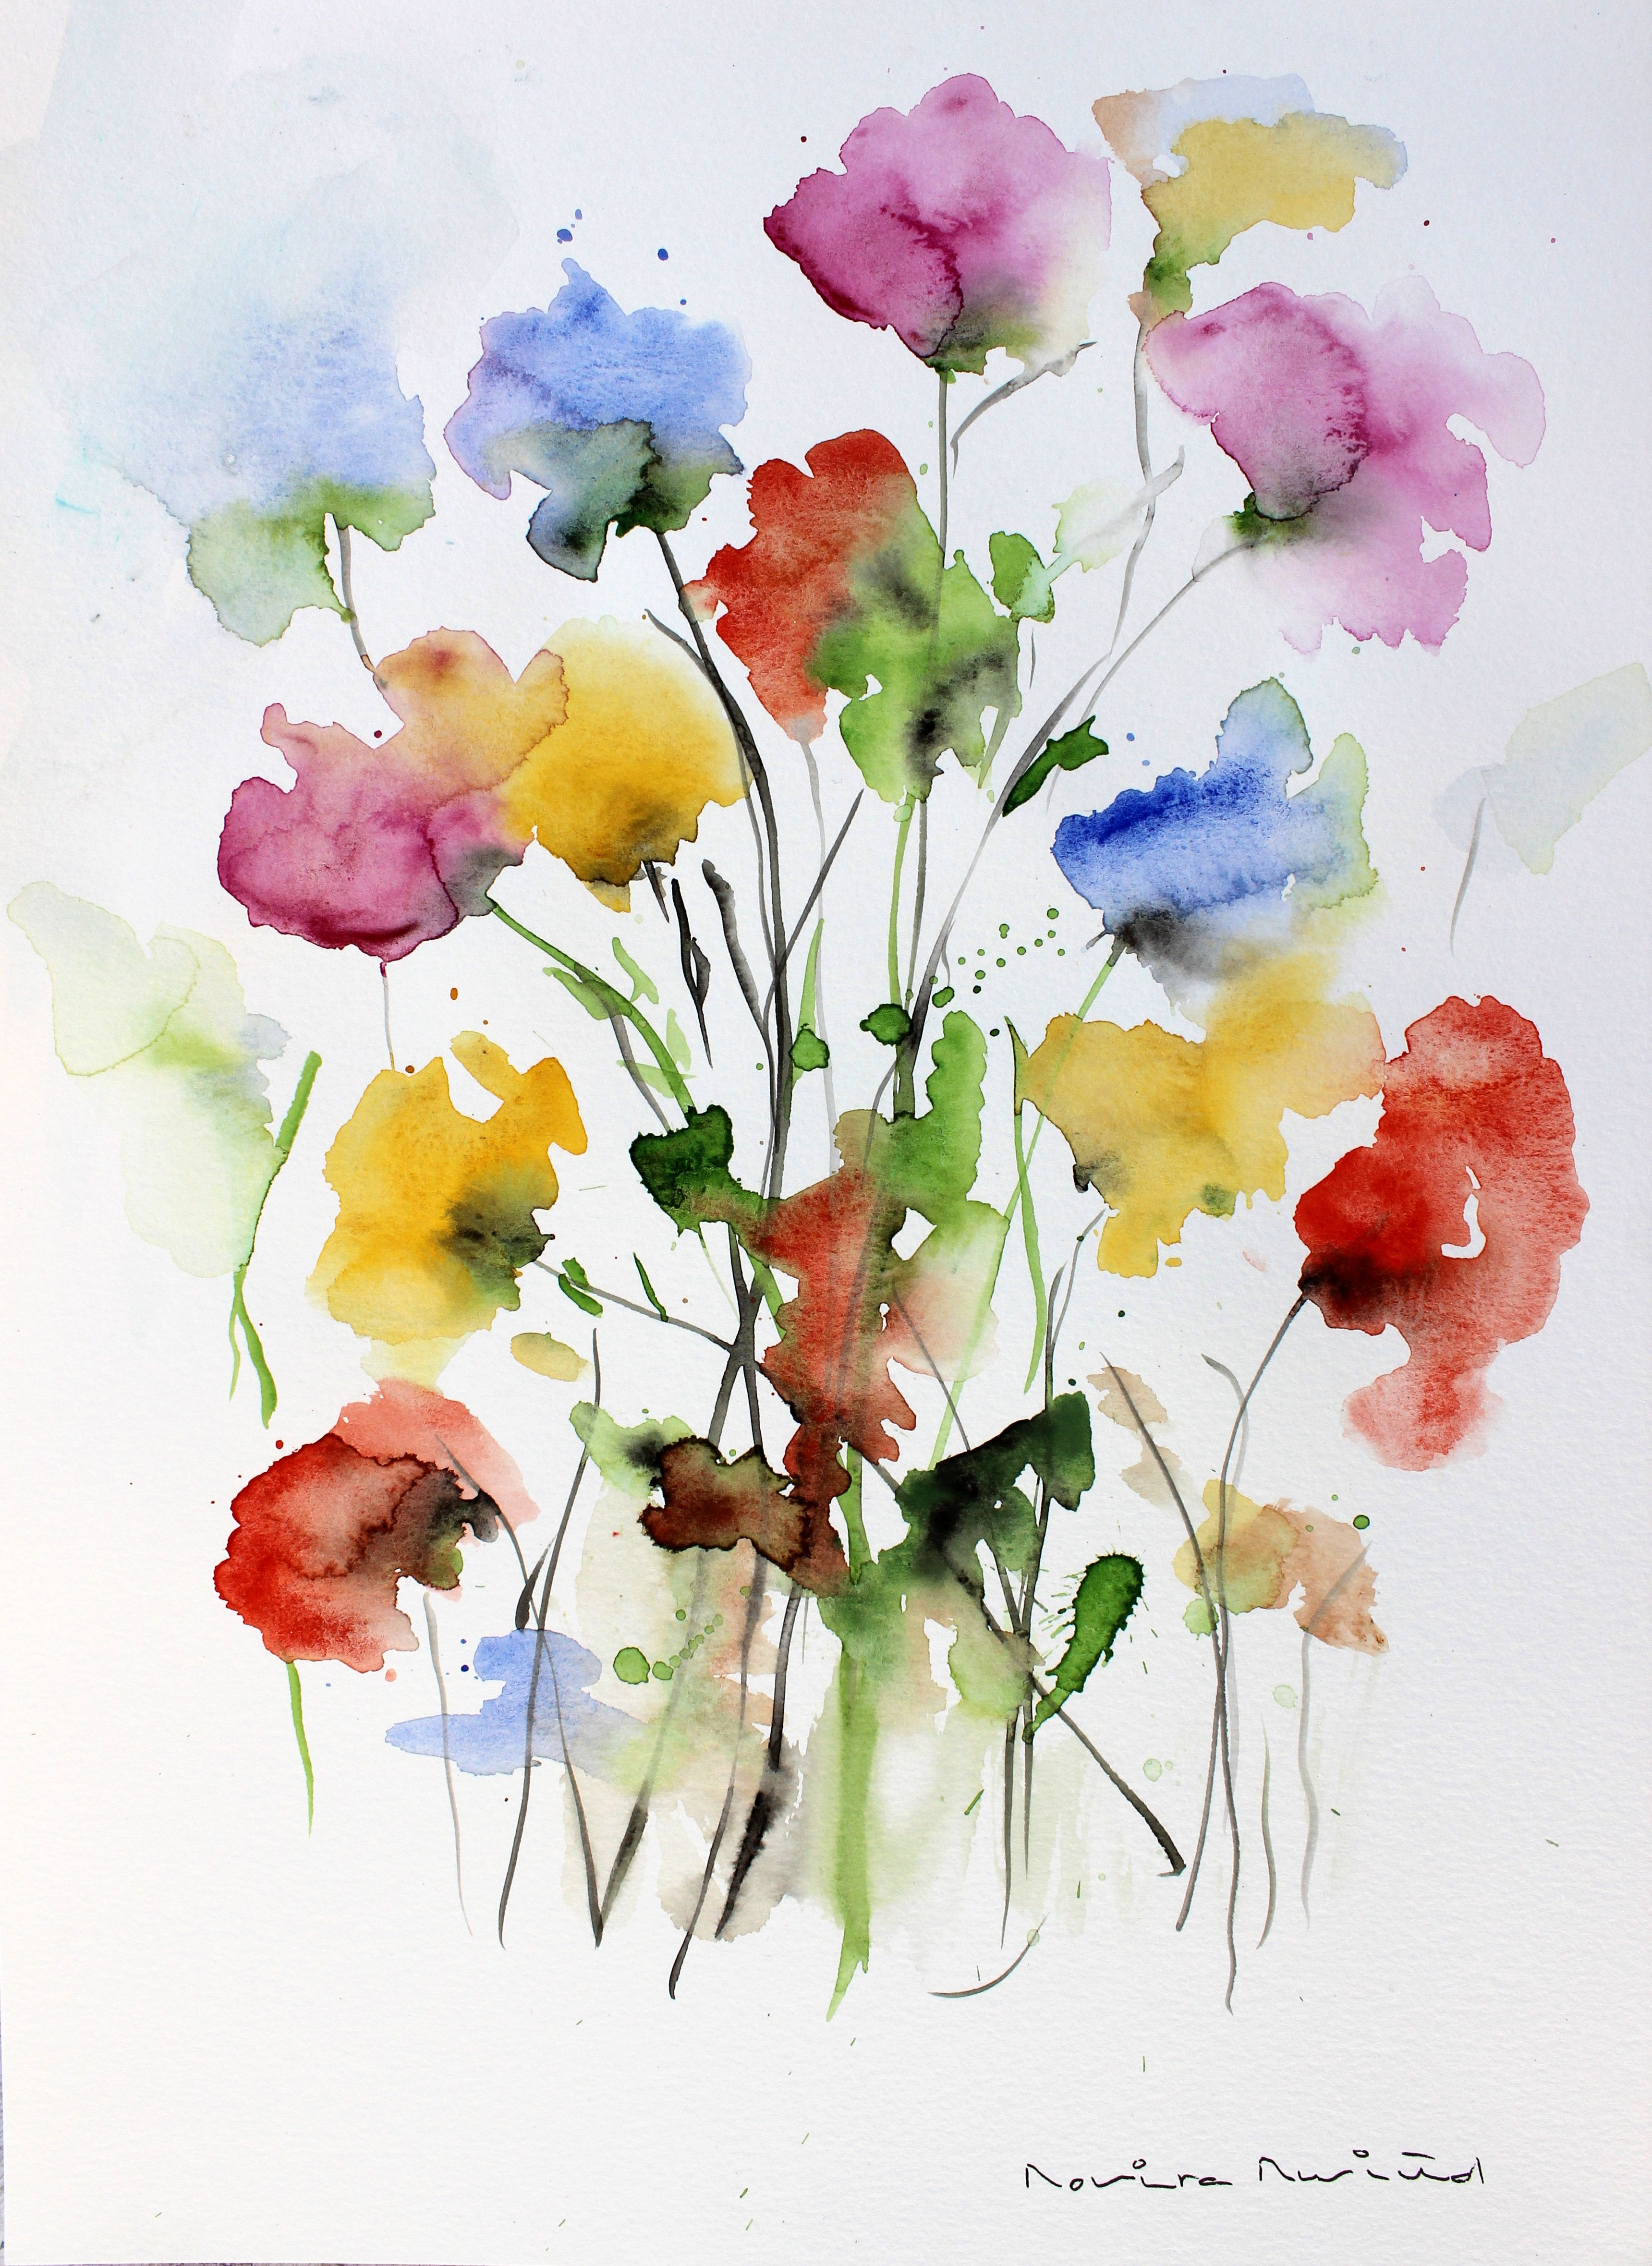 Epingle Par Tantal Ising Sur Aquarelle Coquelicots Aquarelle